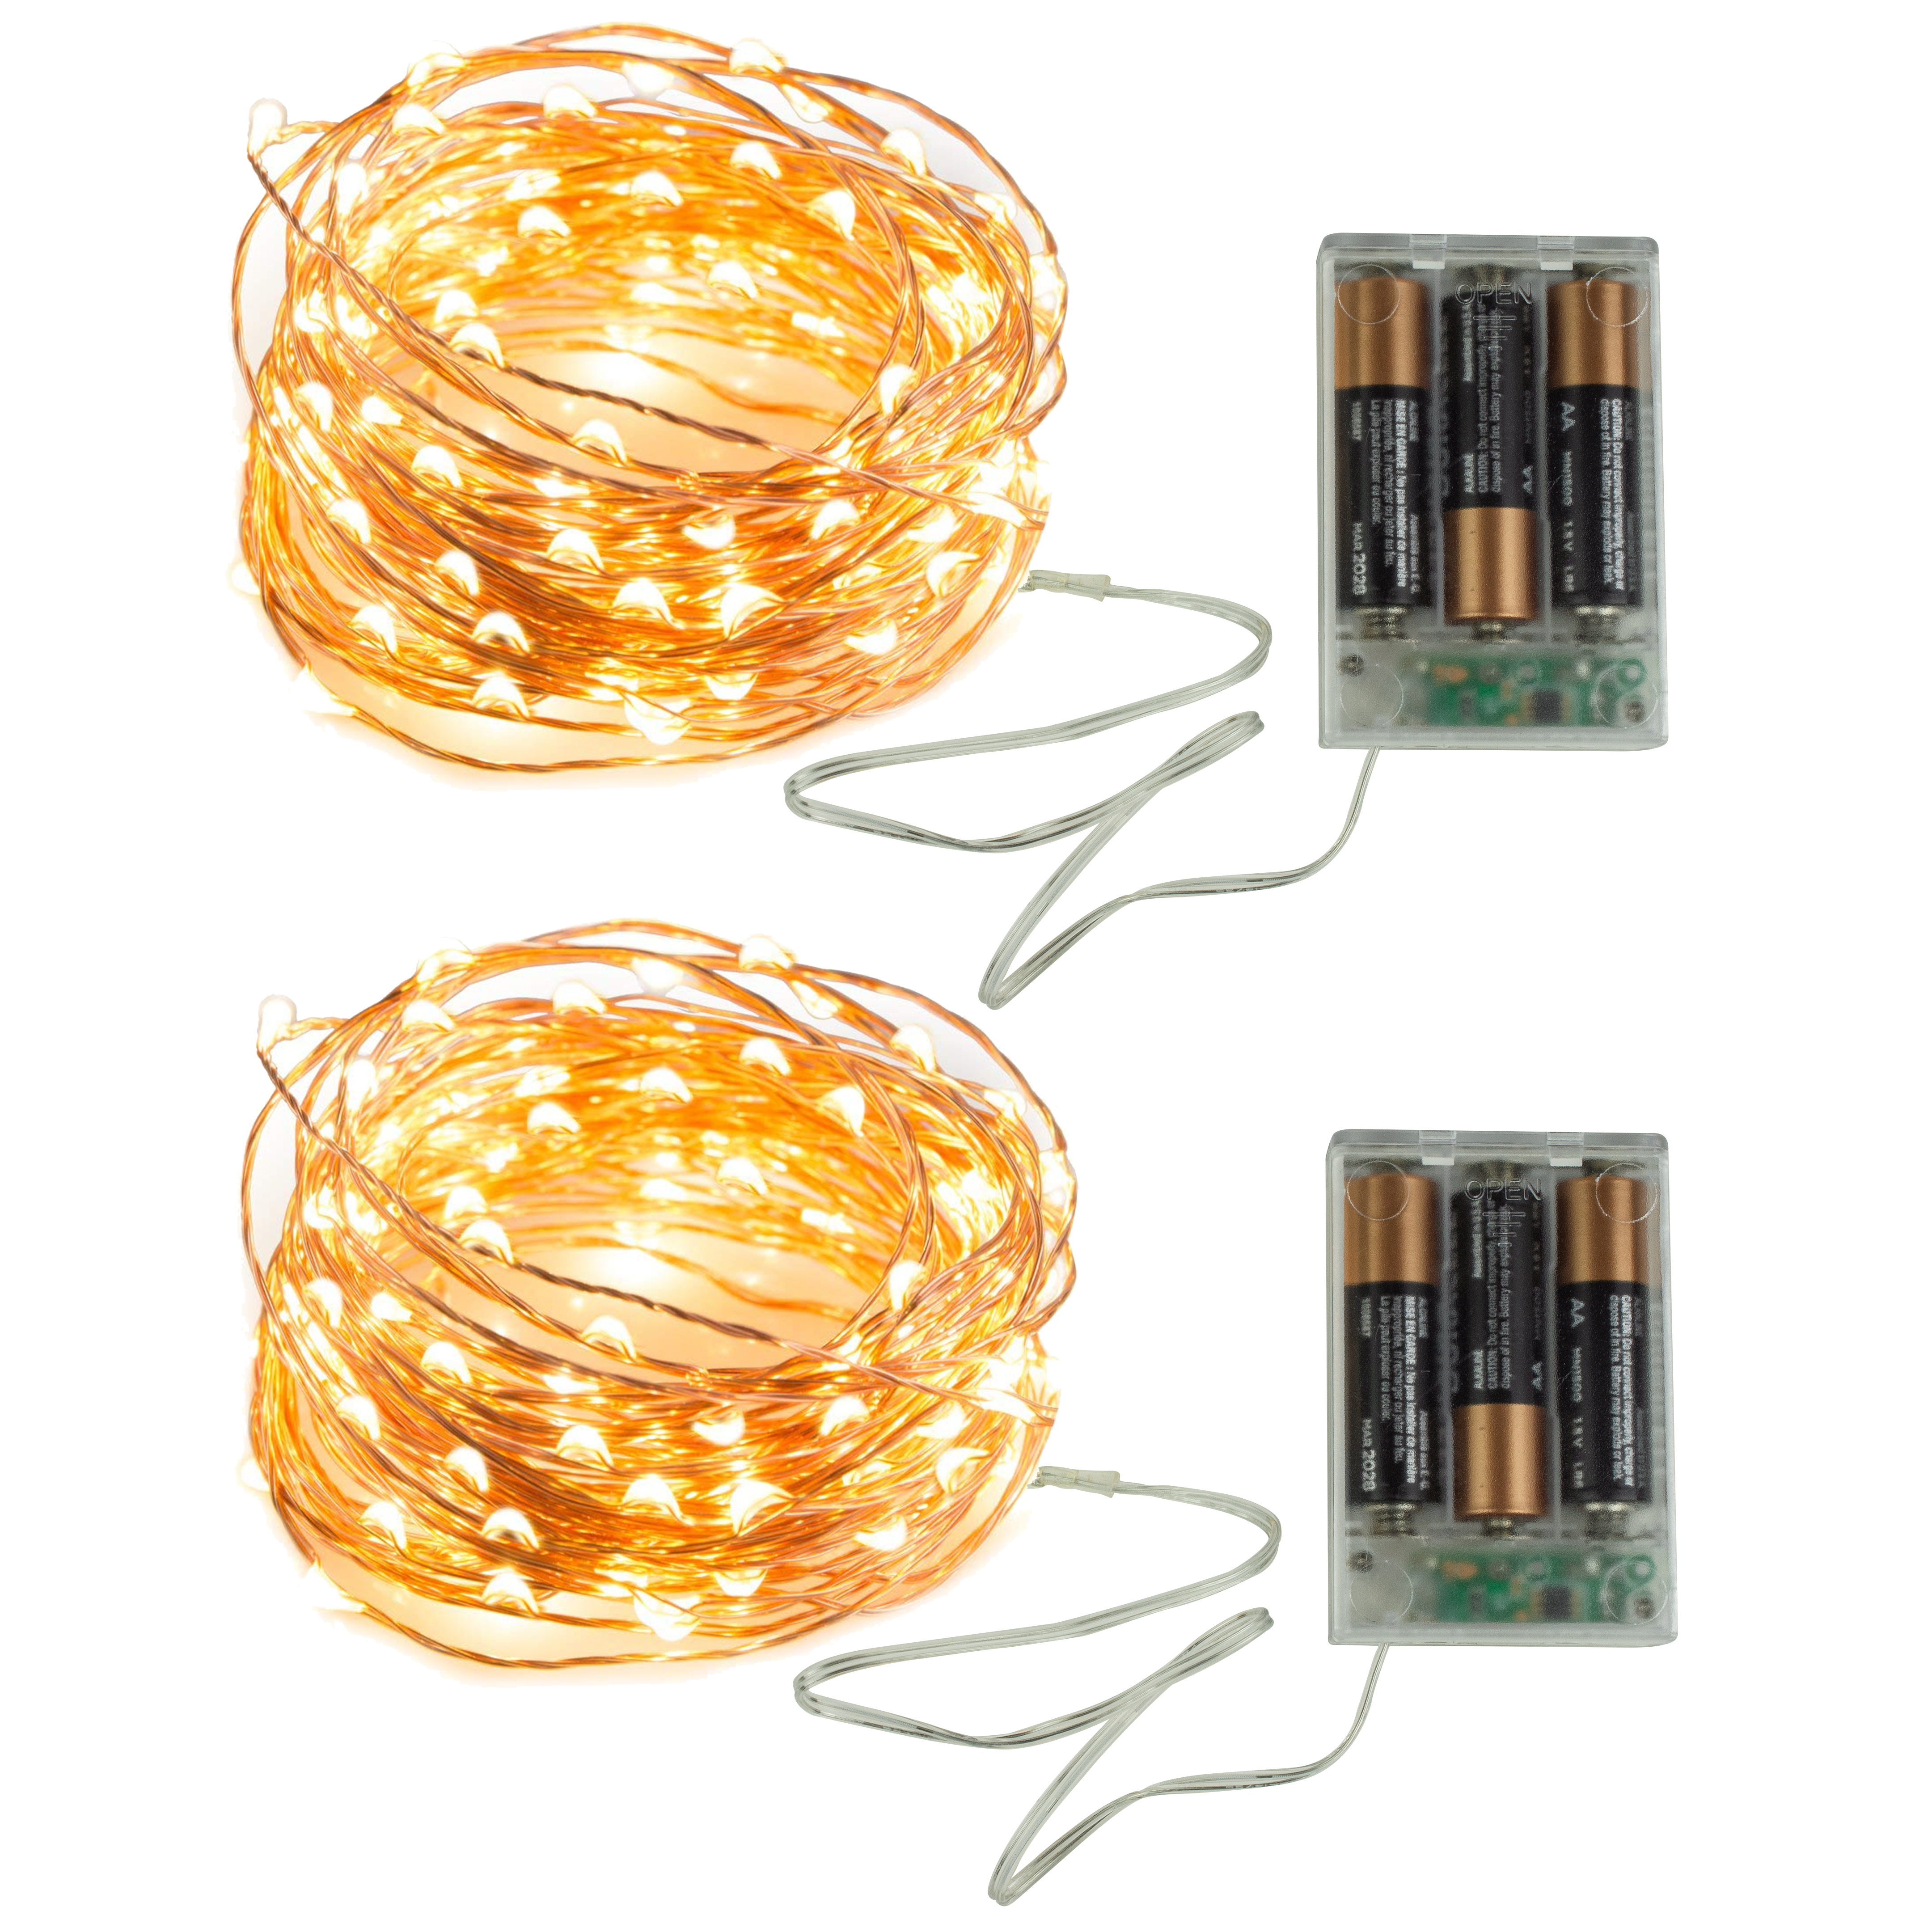 32ft Battery Powered Led String Lights With 100 Led Lights Waterproof Outdoor And Indoor Fairy Lights Patio Lights Party Lights Dorm Room Essentials Copper Wire Lights Warm White 2 Pack Newhouse Lighting